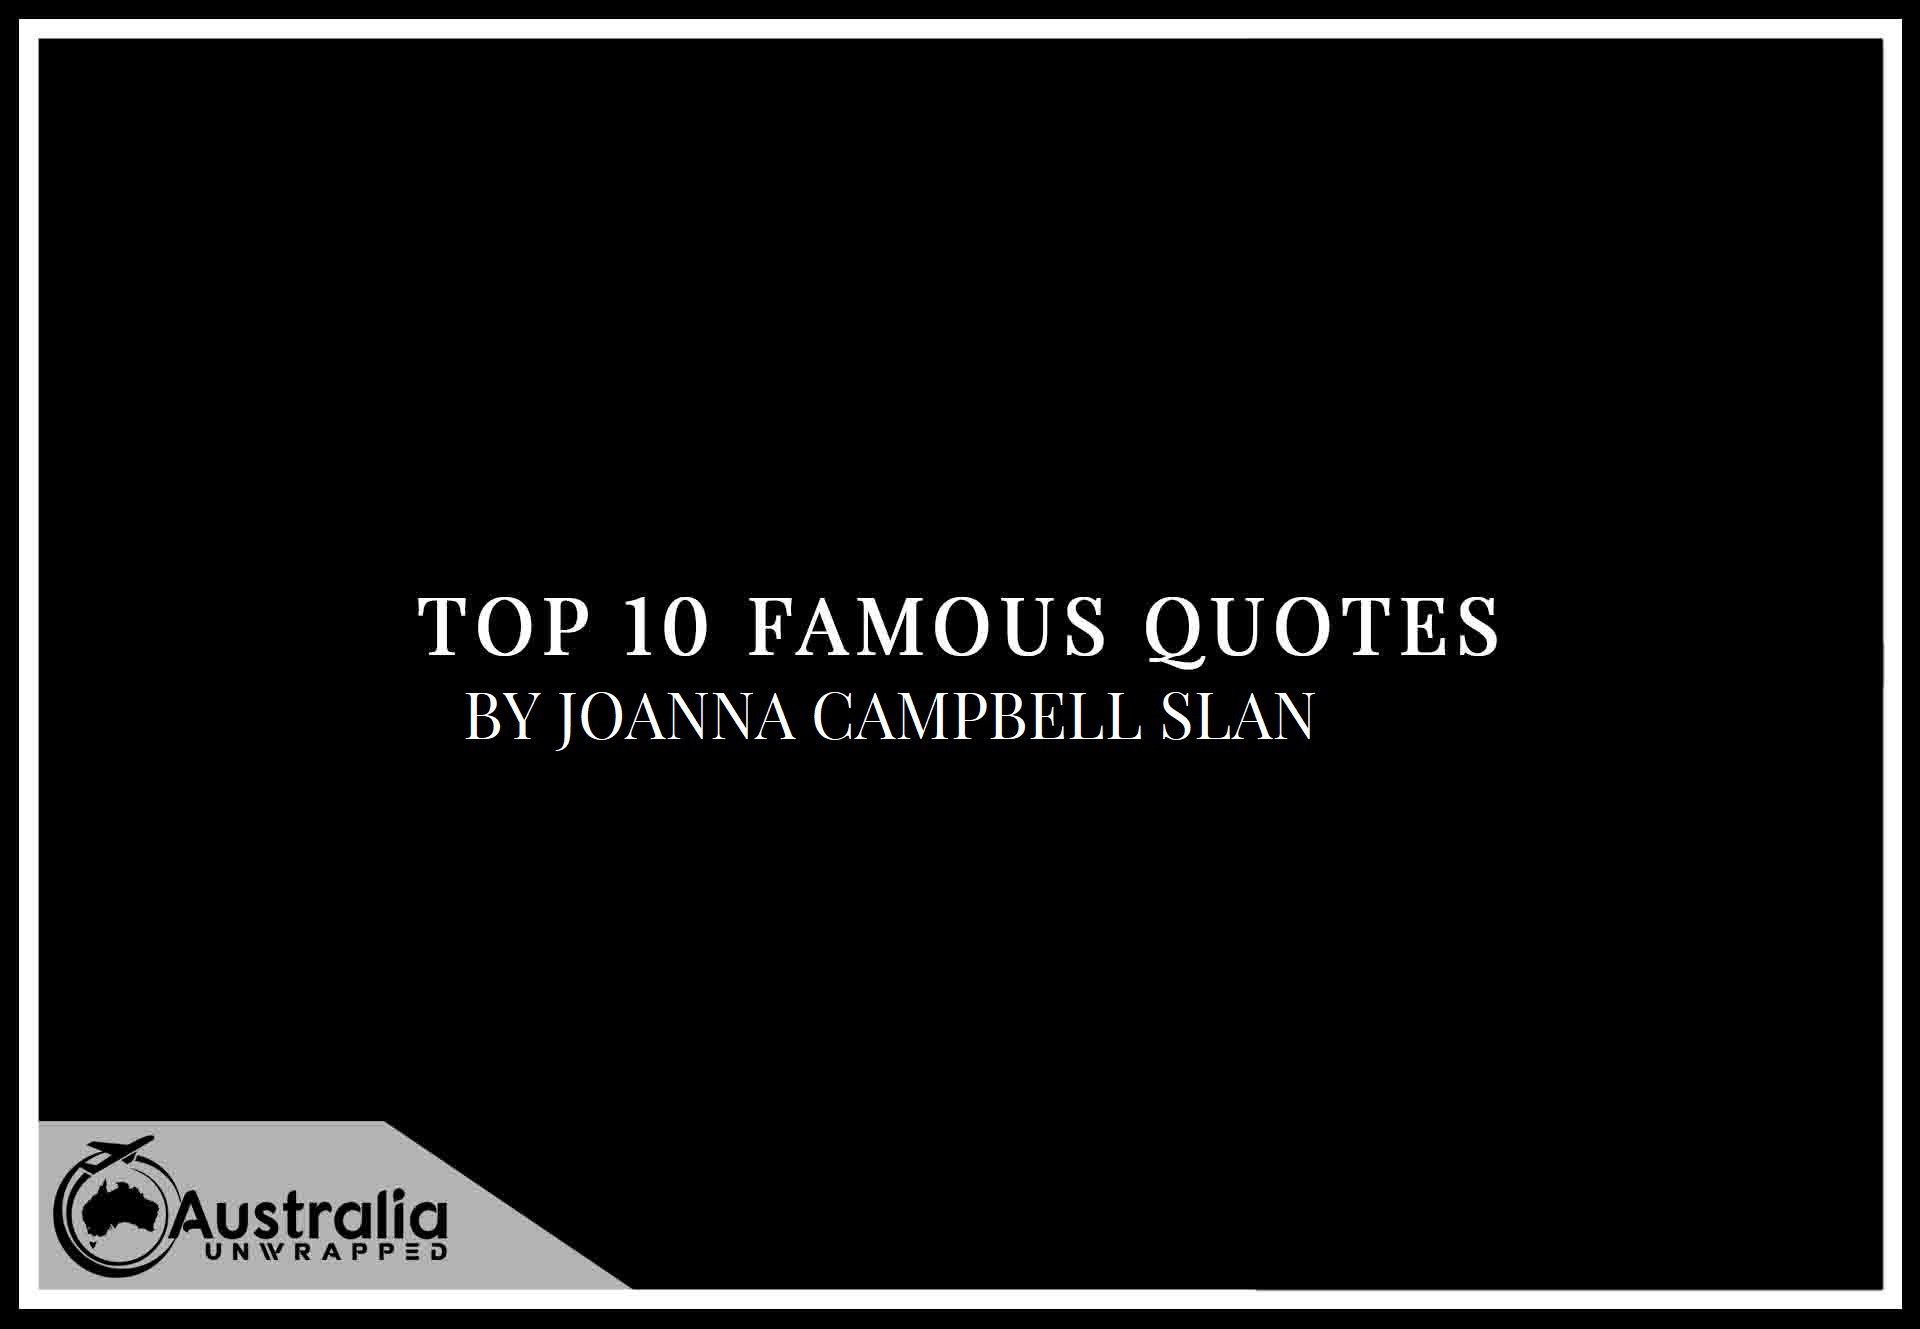 Top 10 Famous Quotes by Author Joanna Campbell Slan